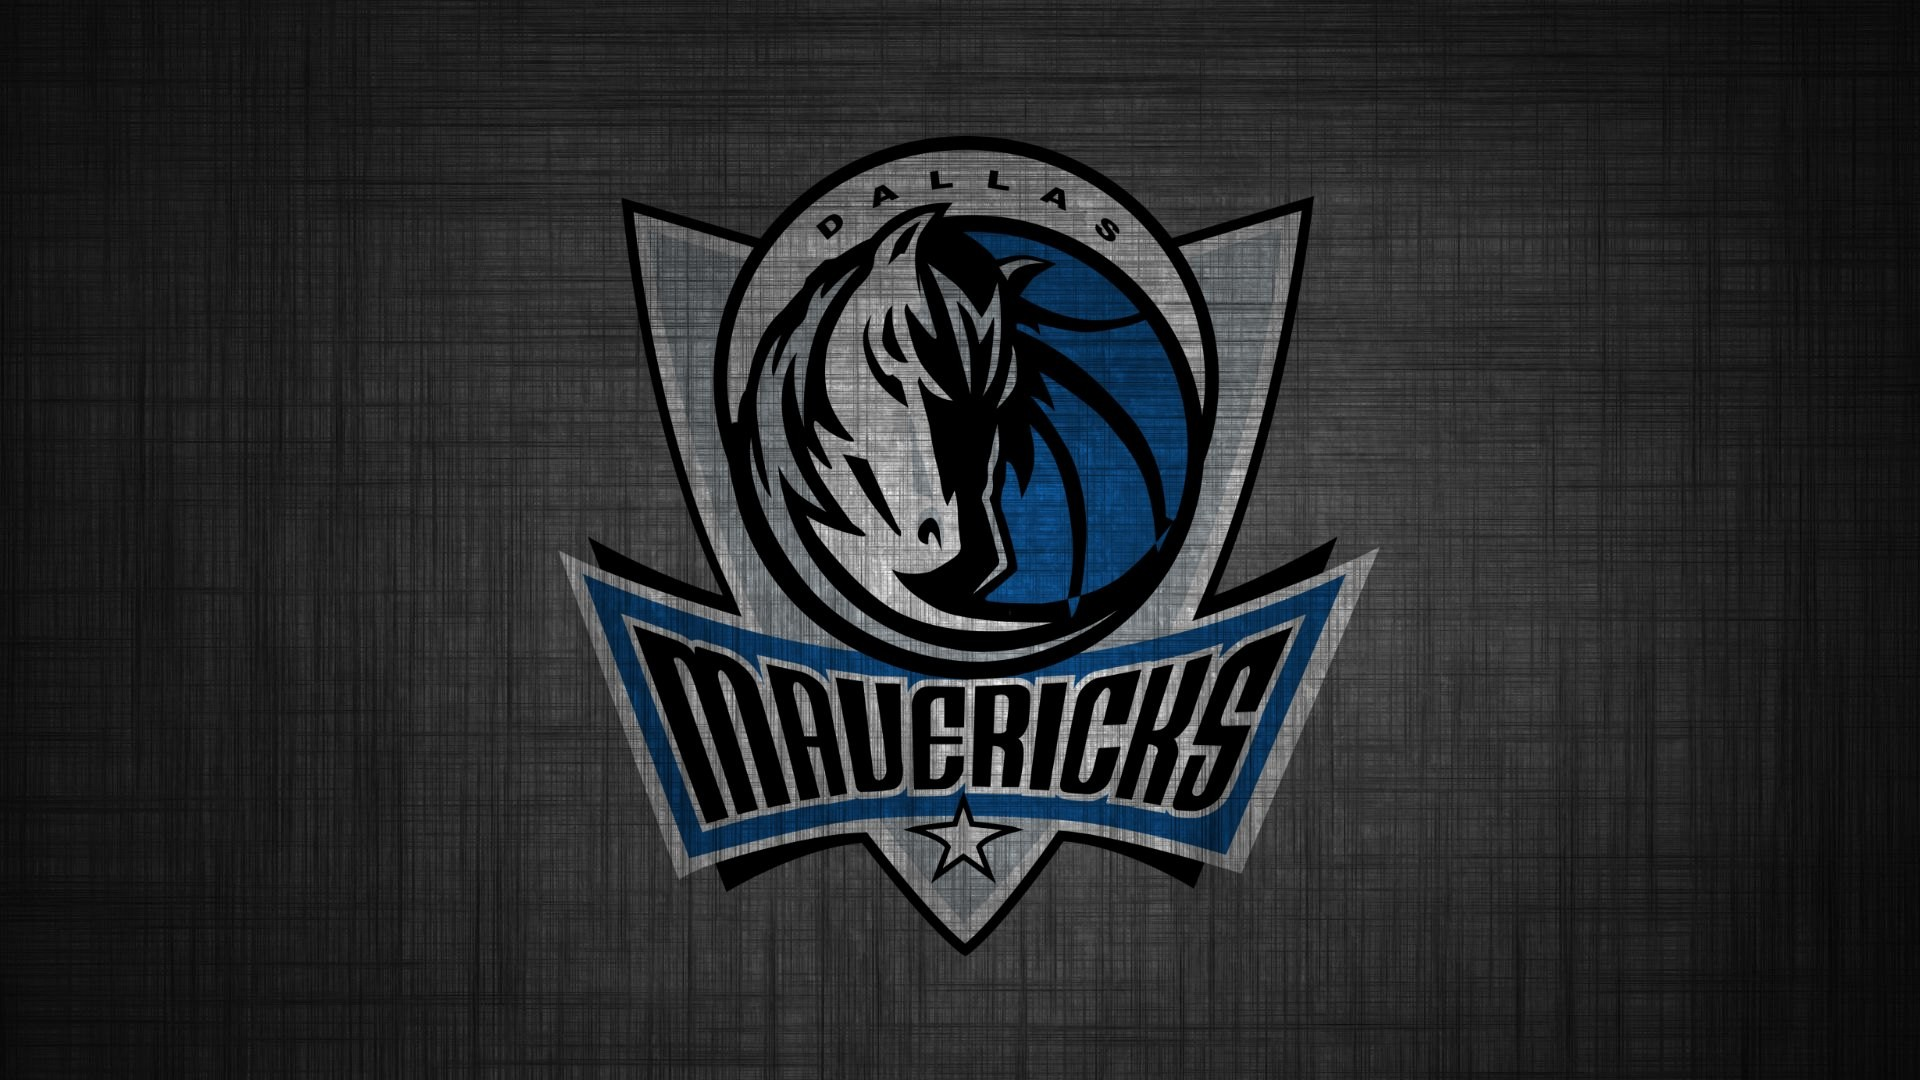 1920x1080 Dallas Mavericks 2015 Wallpaper